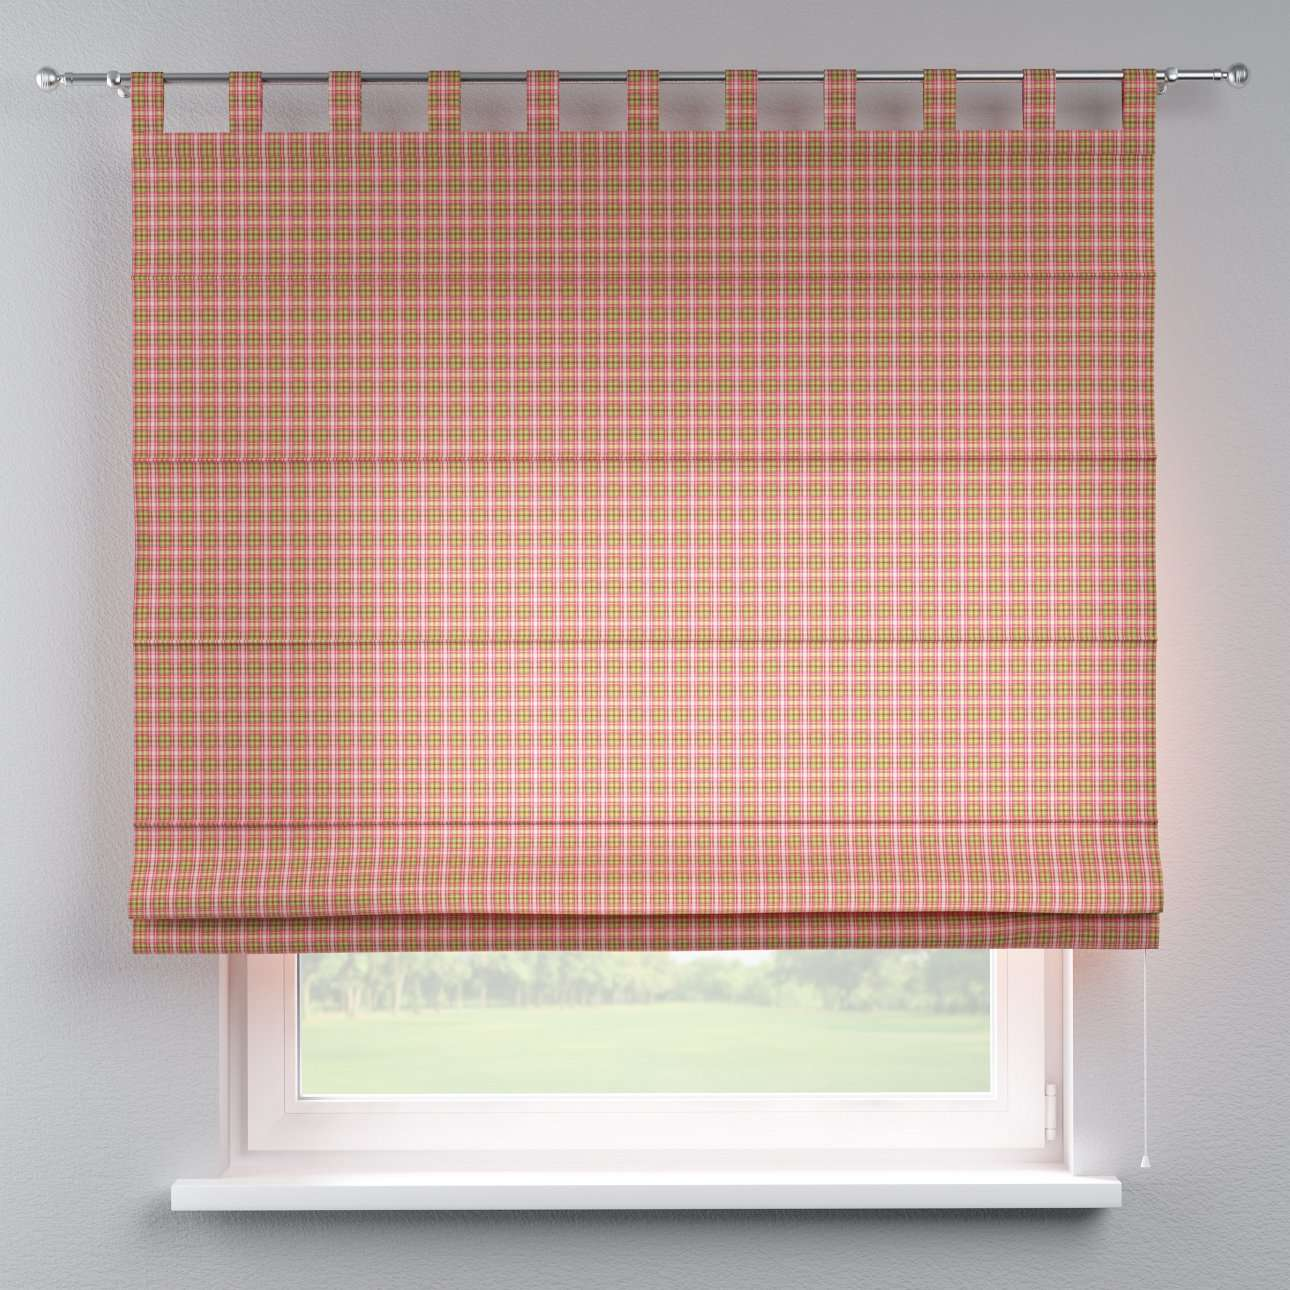 Verona tab top roman blind 80 x 170 cm (31.5 x 67 inch) in collection Bristol, fabric: 126-25